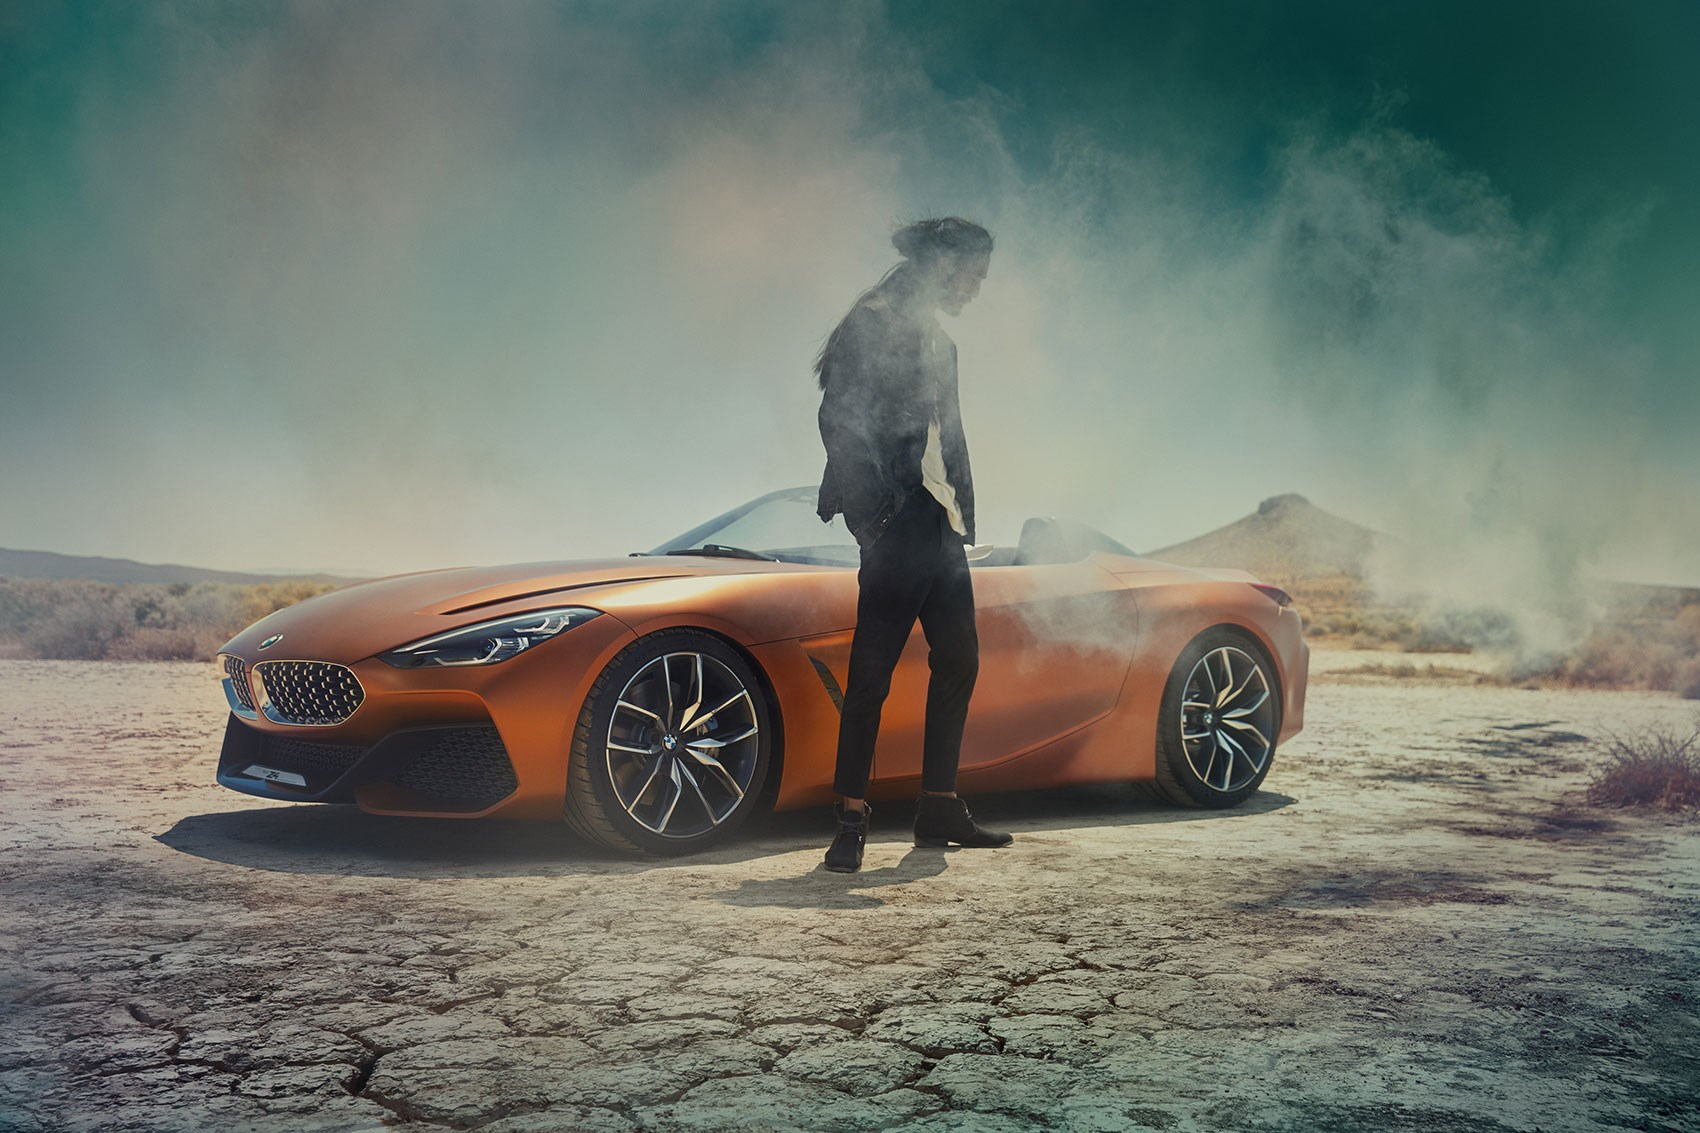 Super Sized Bmw Kidney Grille Extra Wide On 2017 Concept Z4 Cue The Usual Lifestyle Photos Where You Can T Really See Car Or Man